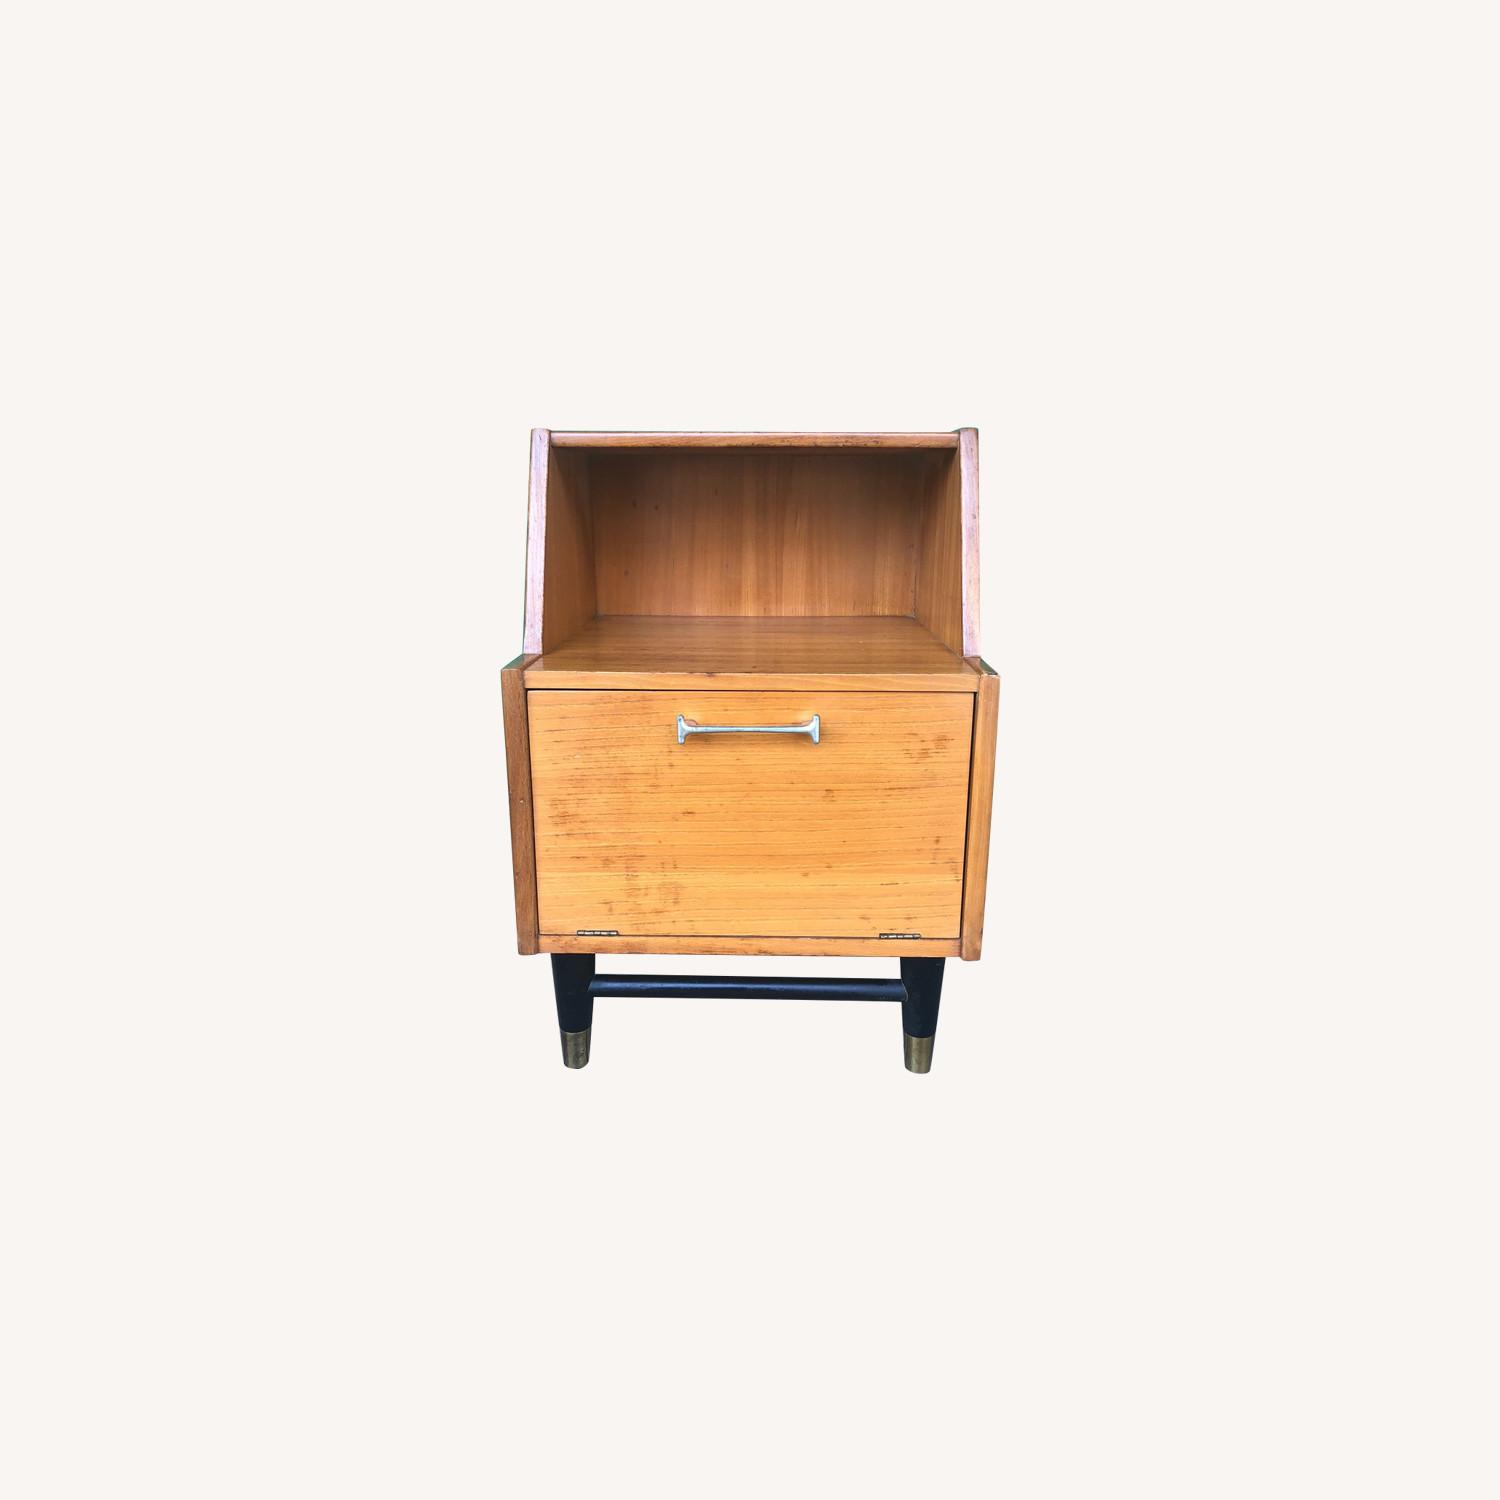 Mid century nightstand with drop front by Drexel - image-0